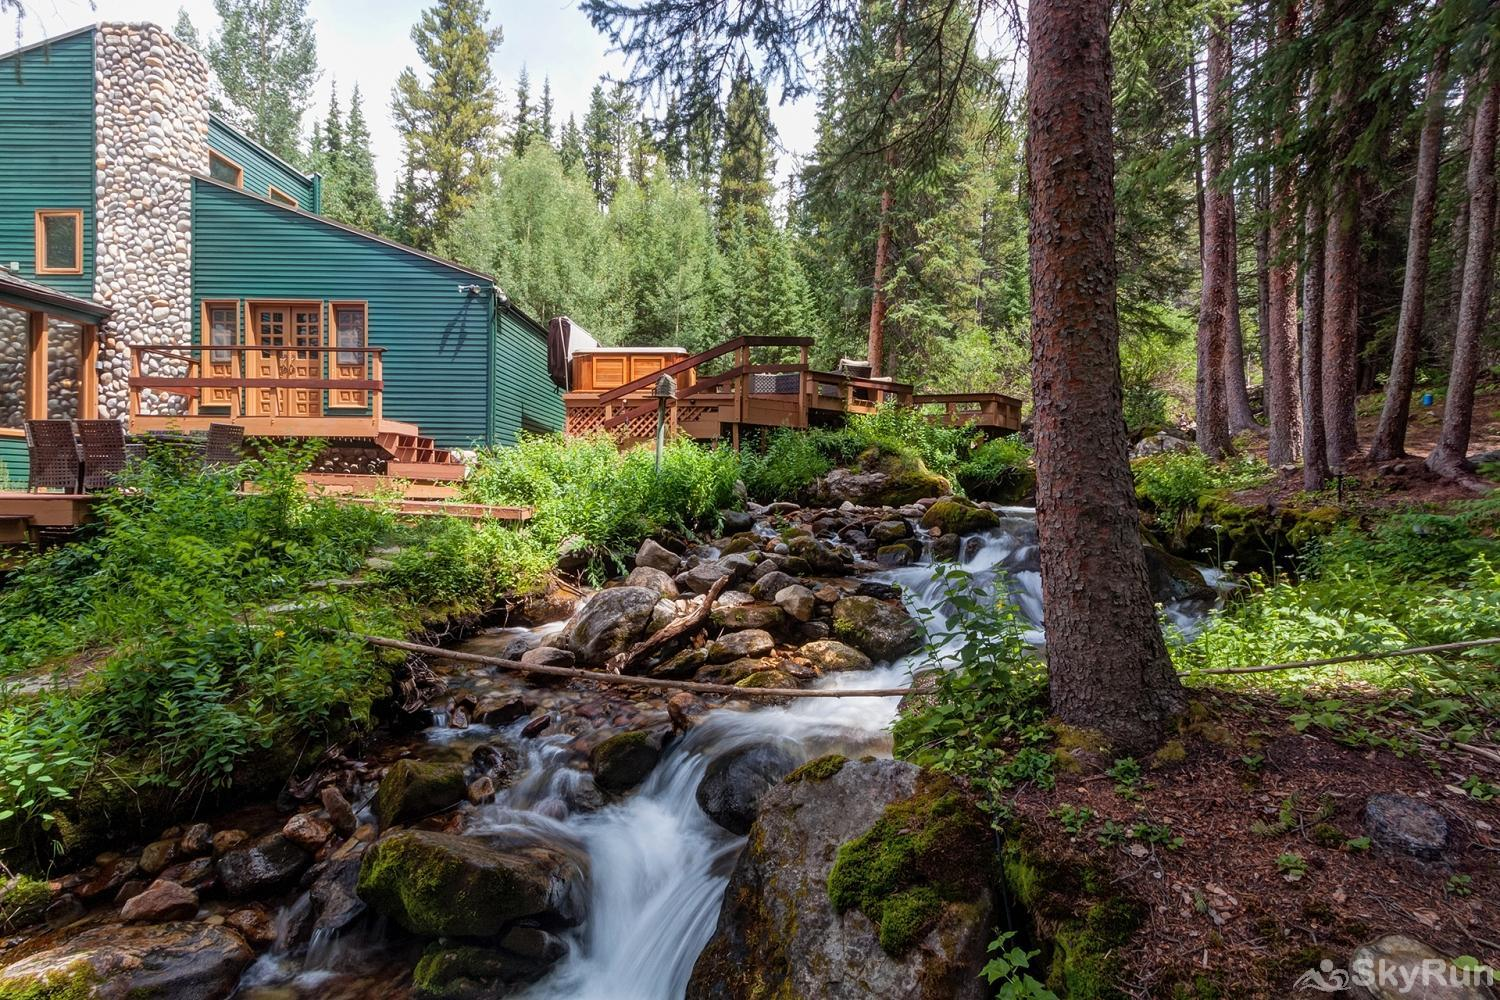 Creekside Chateau Secluded creekside Breckenridge home